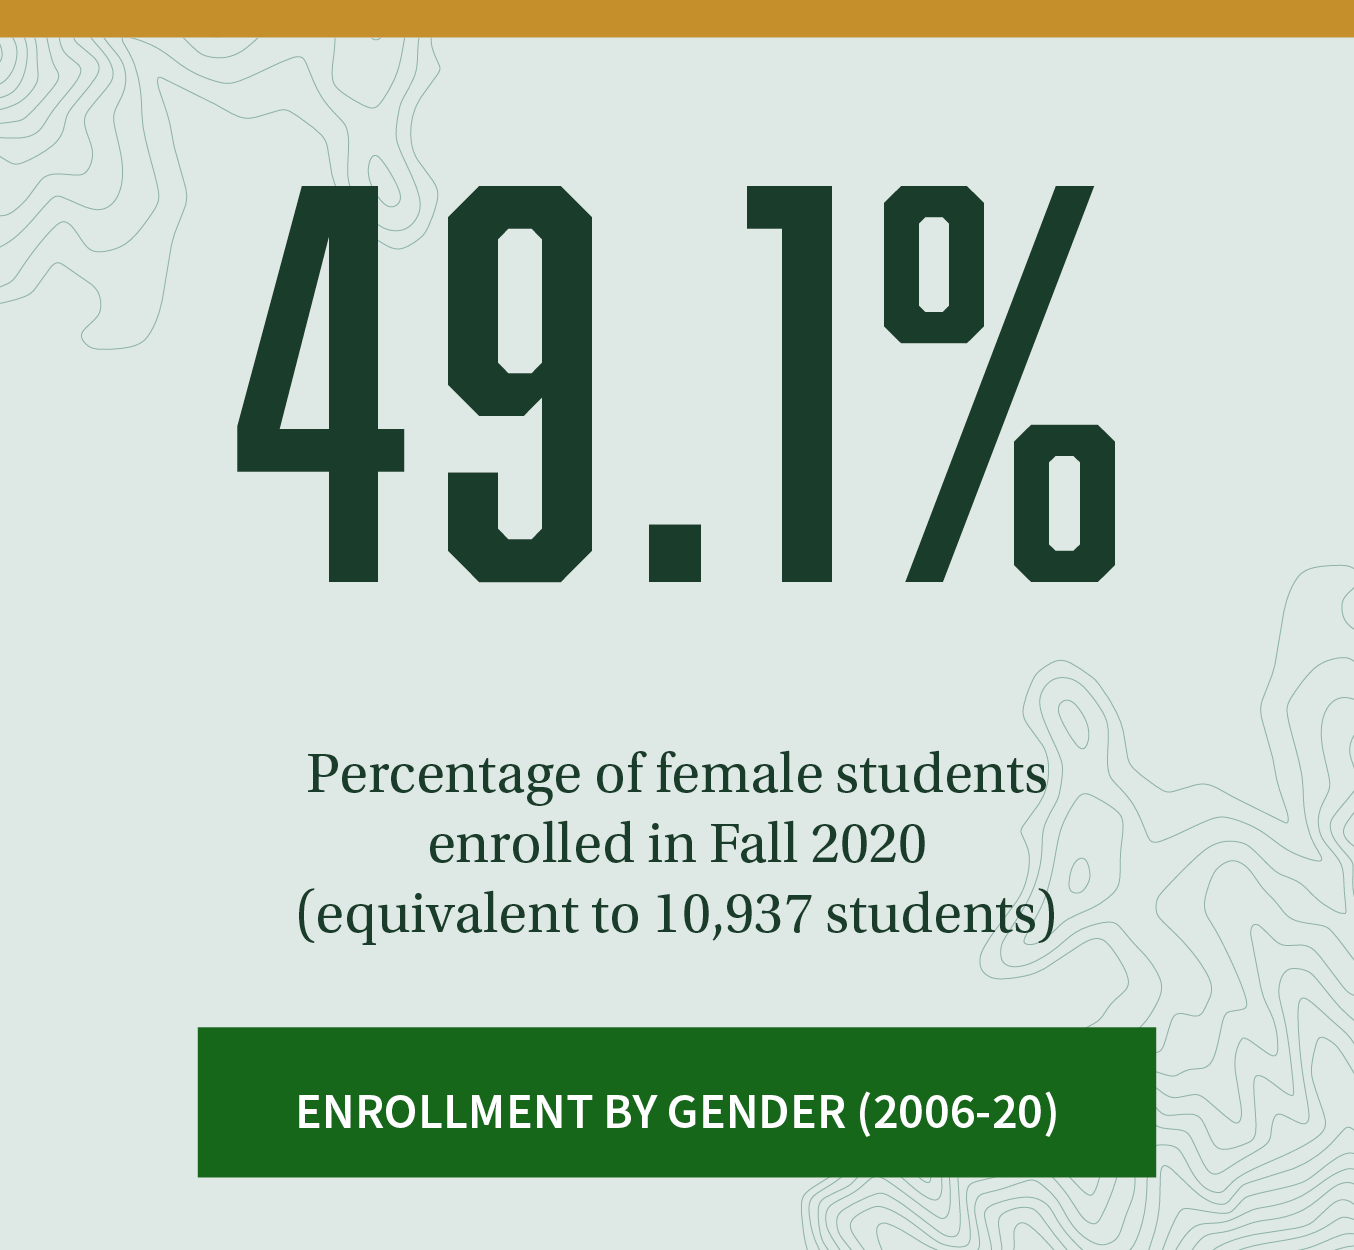 49.1%. Percentage of female students enrolled in Fall 2020 (equivalent to 10,937 students). Click to learn about Enrollment by Gender trends between 2006-20.